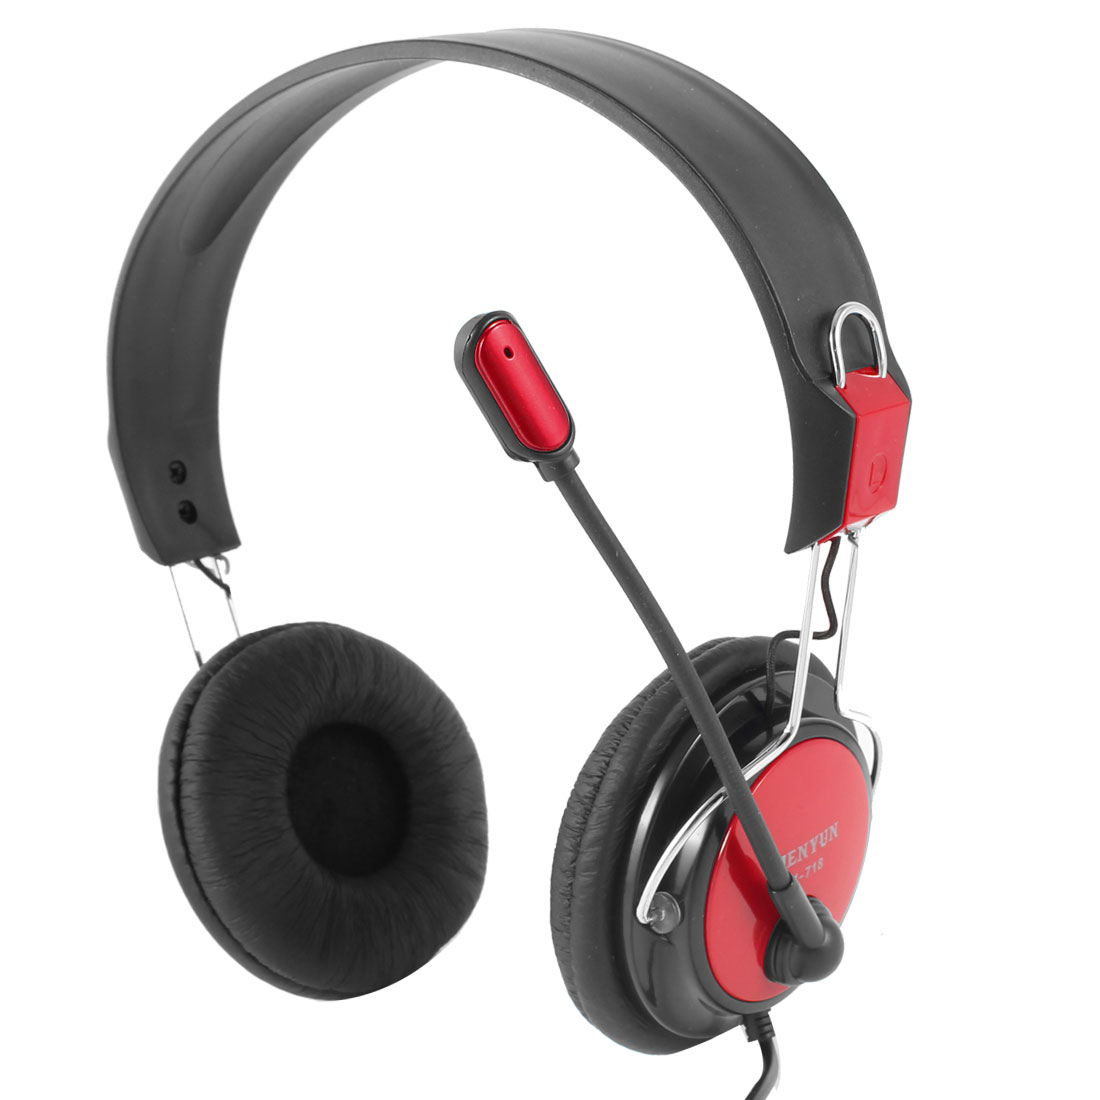 Dual 3.5mm Jack Stereo Black Red Ear Pad Headphone Earphone w Mic for Laptop PC